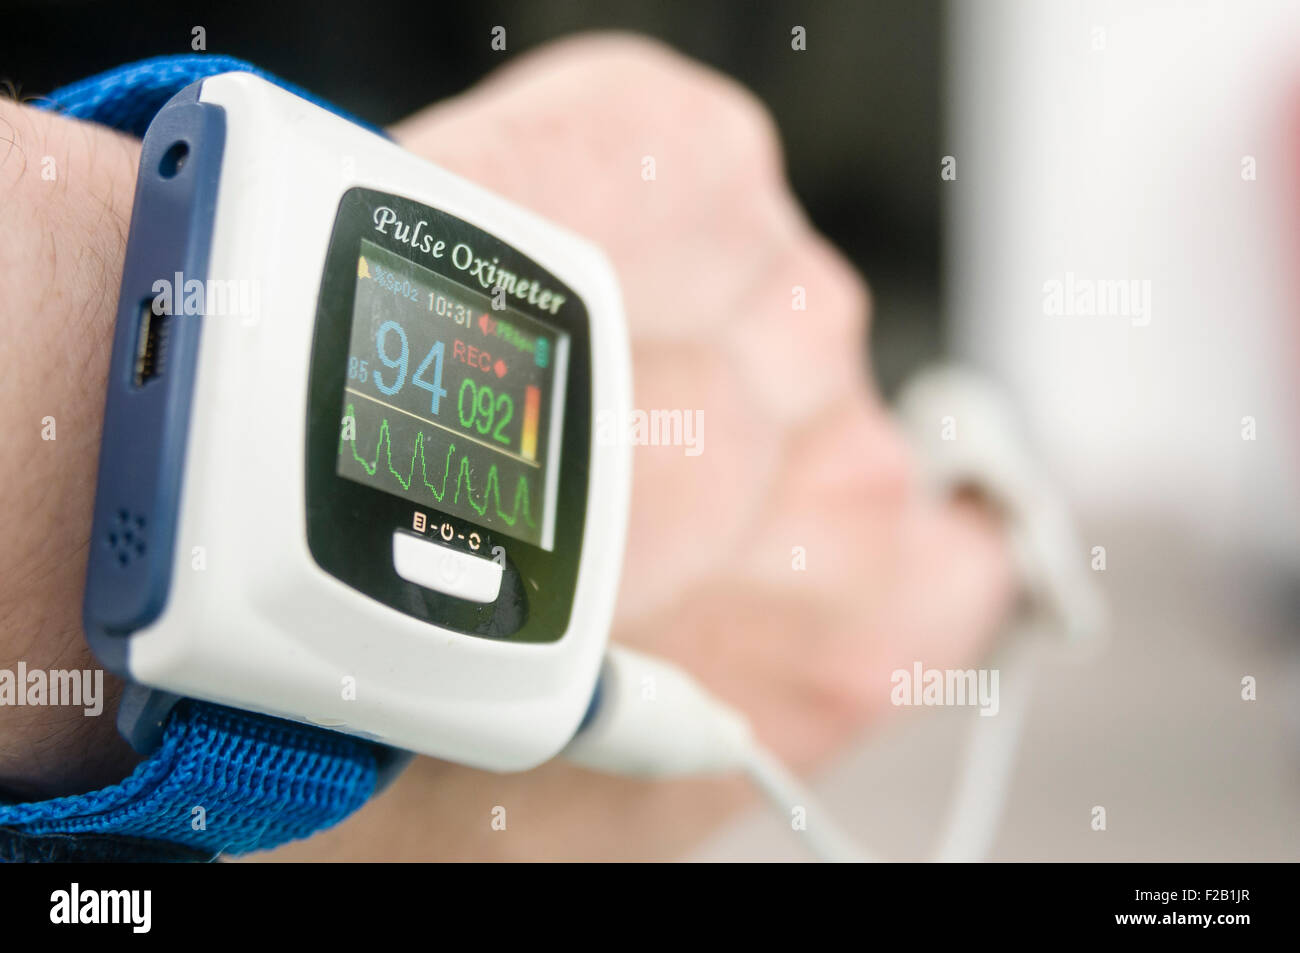 Pulse oximeter being worn by a male patient to measure his blood oxygen saturation level - Stock Image